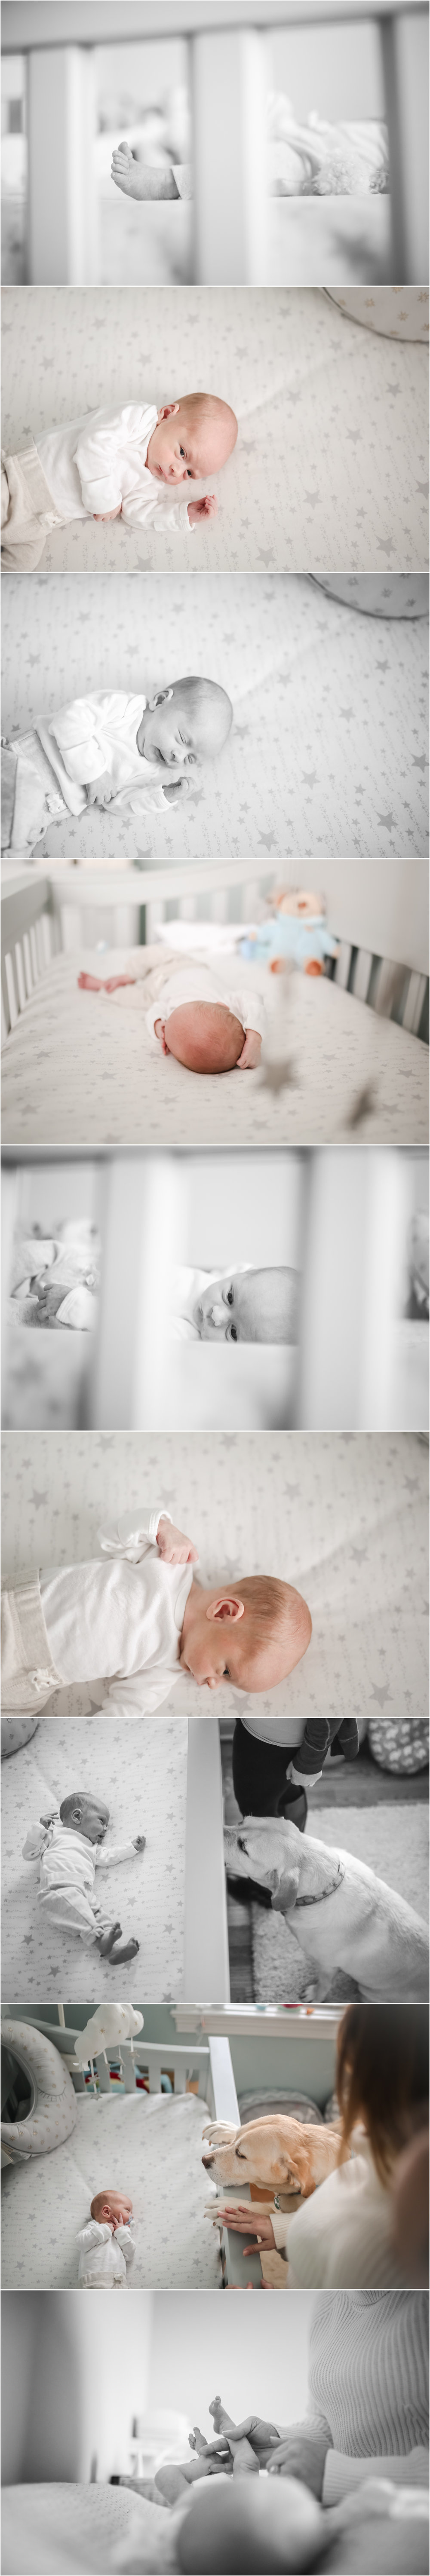 jenny grimm photography chicago newborn lifestyle photographer